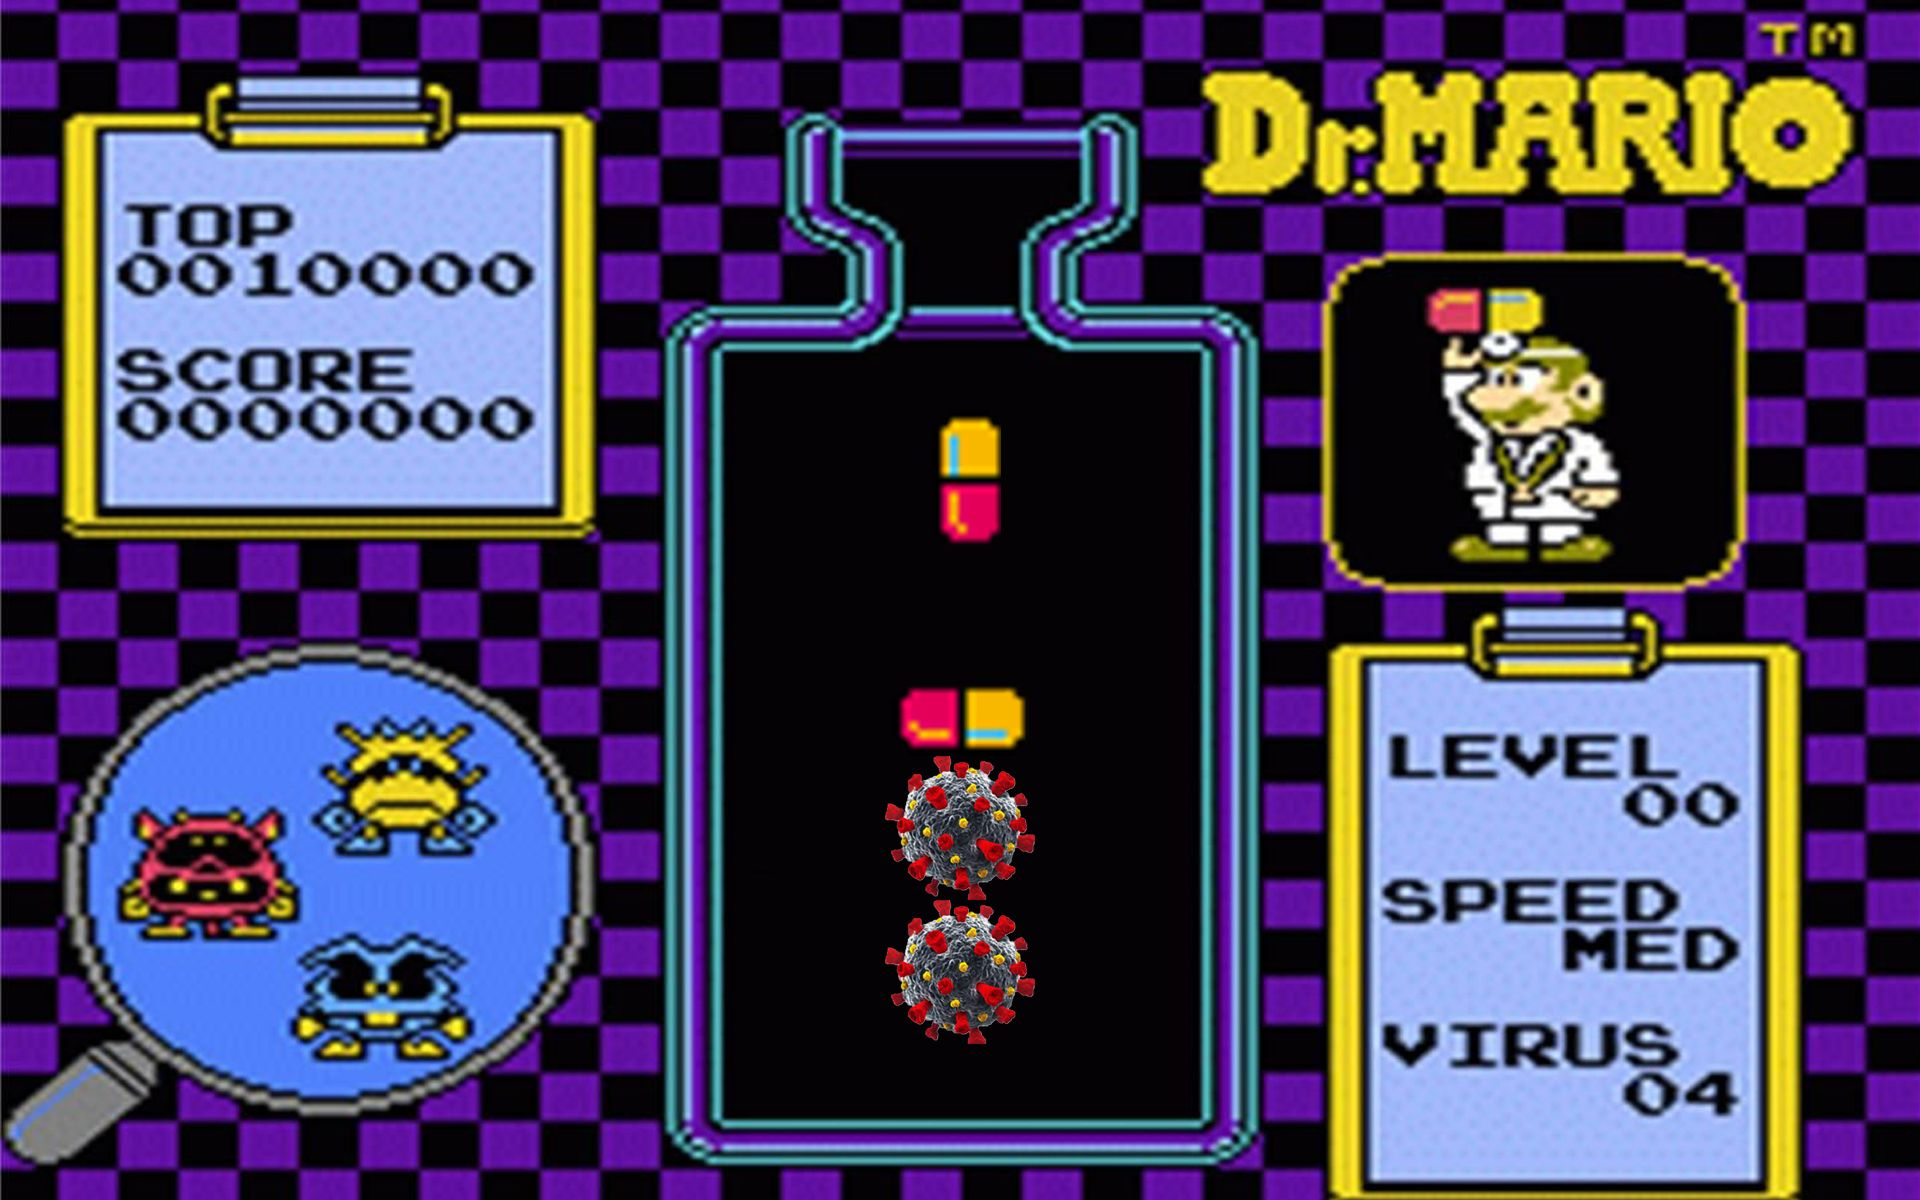 BREAKING: Dr. Mario Finds Red-Yellow Pill Cures COVID-19